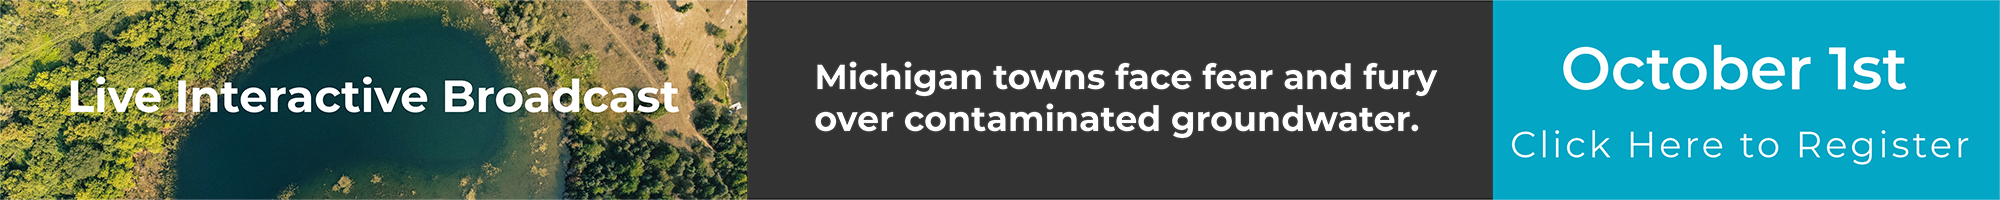 Register for Michigan's Groundwater Emergency - Oct 1, 2018